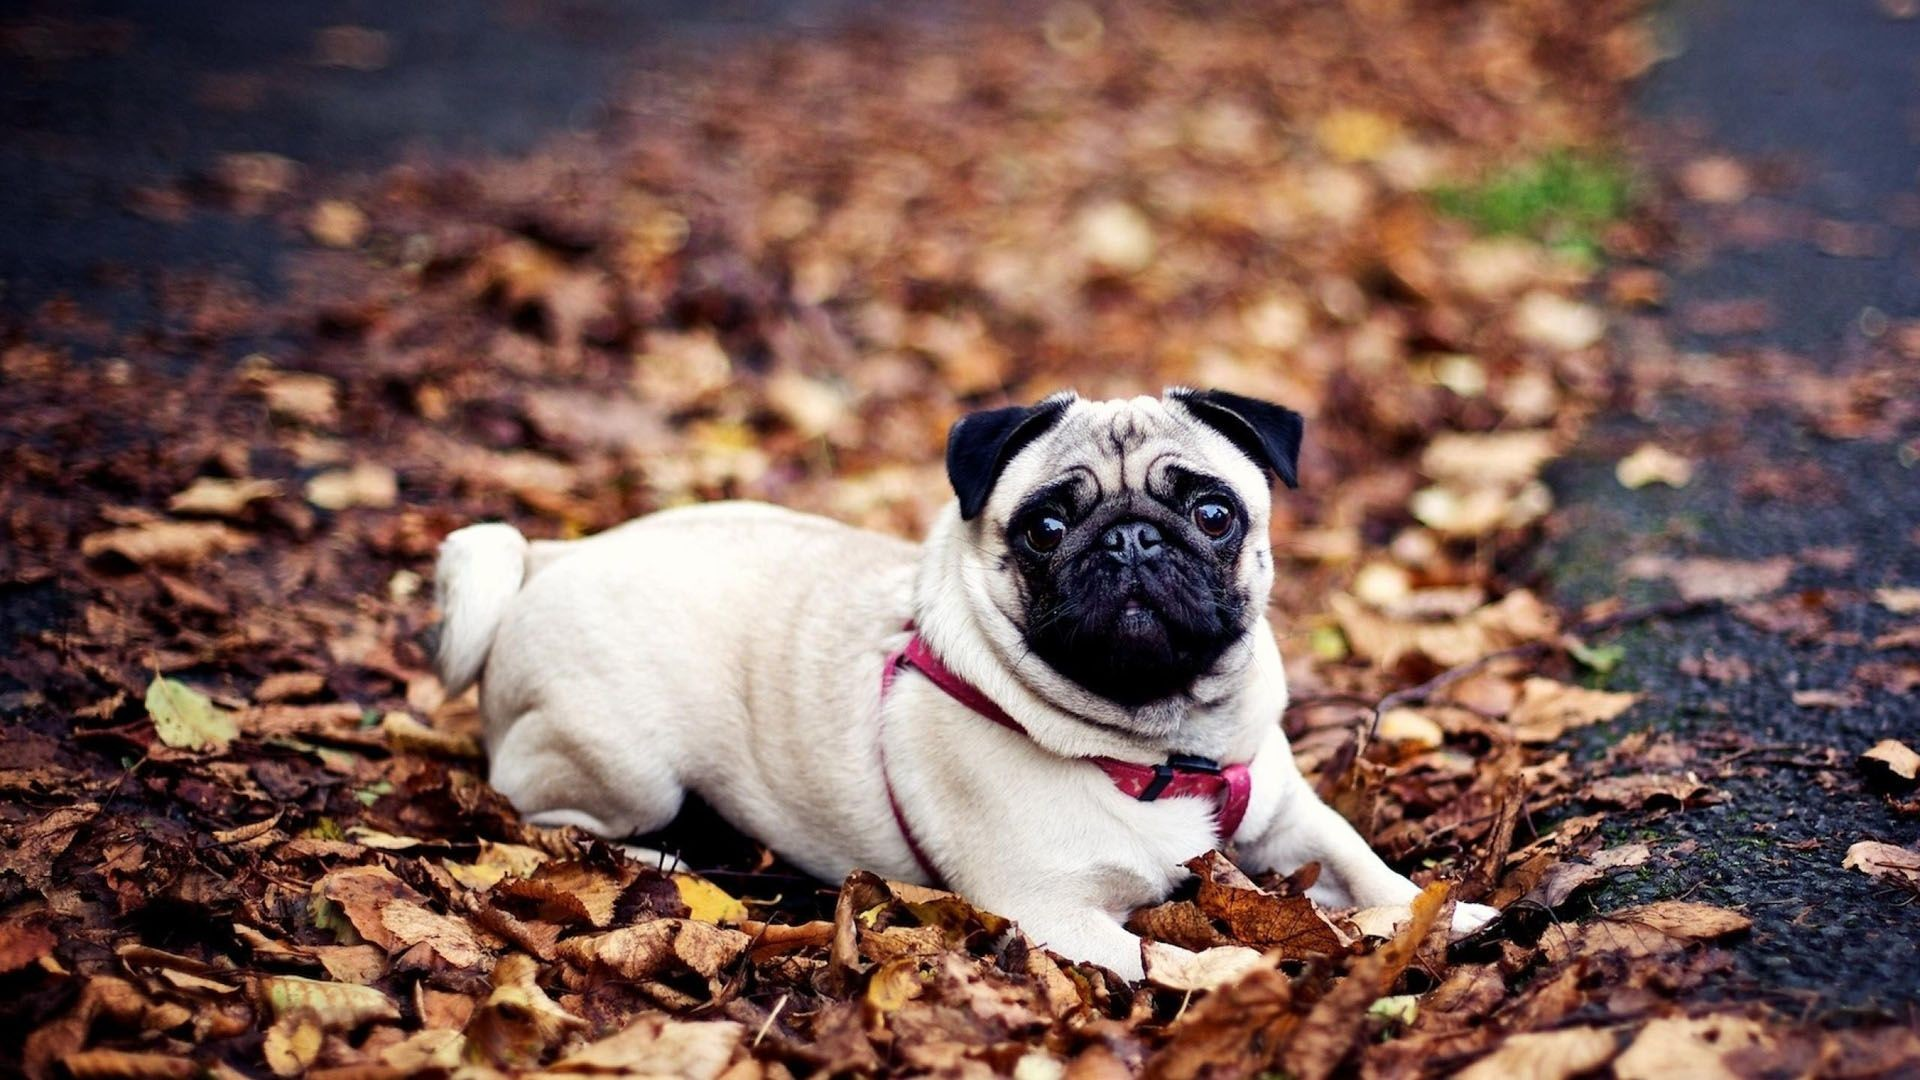 1920x1080 Pug Dog HD Wallpapers Pug Dog Pictures